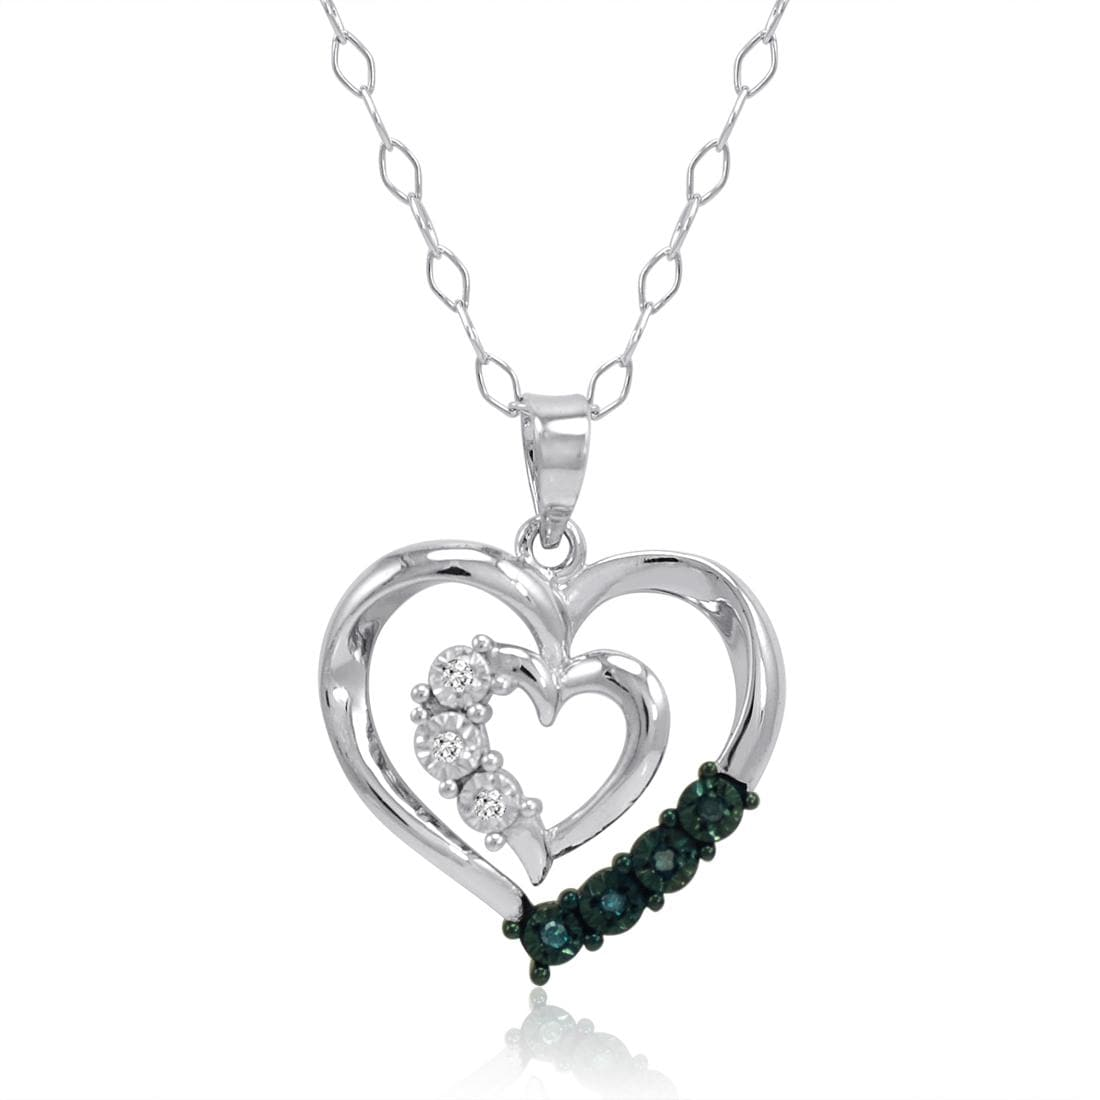 Amanda Rose Blue and White Diamond Heart Pendant-Necklace in Sterling Silver